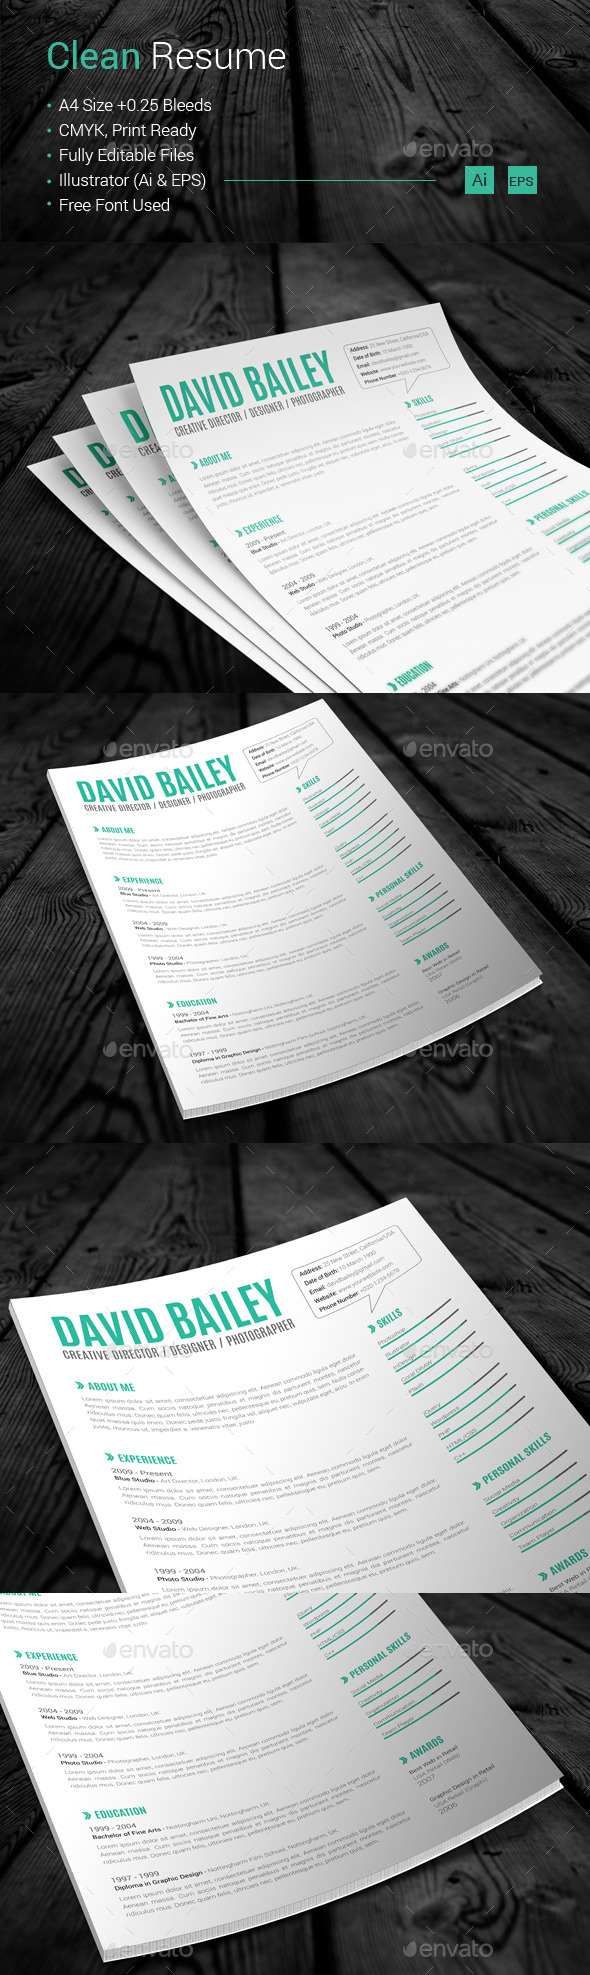 GraphicRiver Clean Resume 10868730